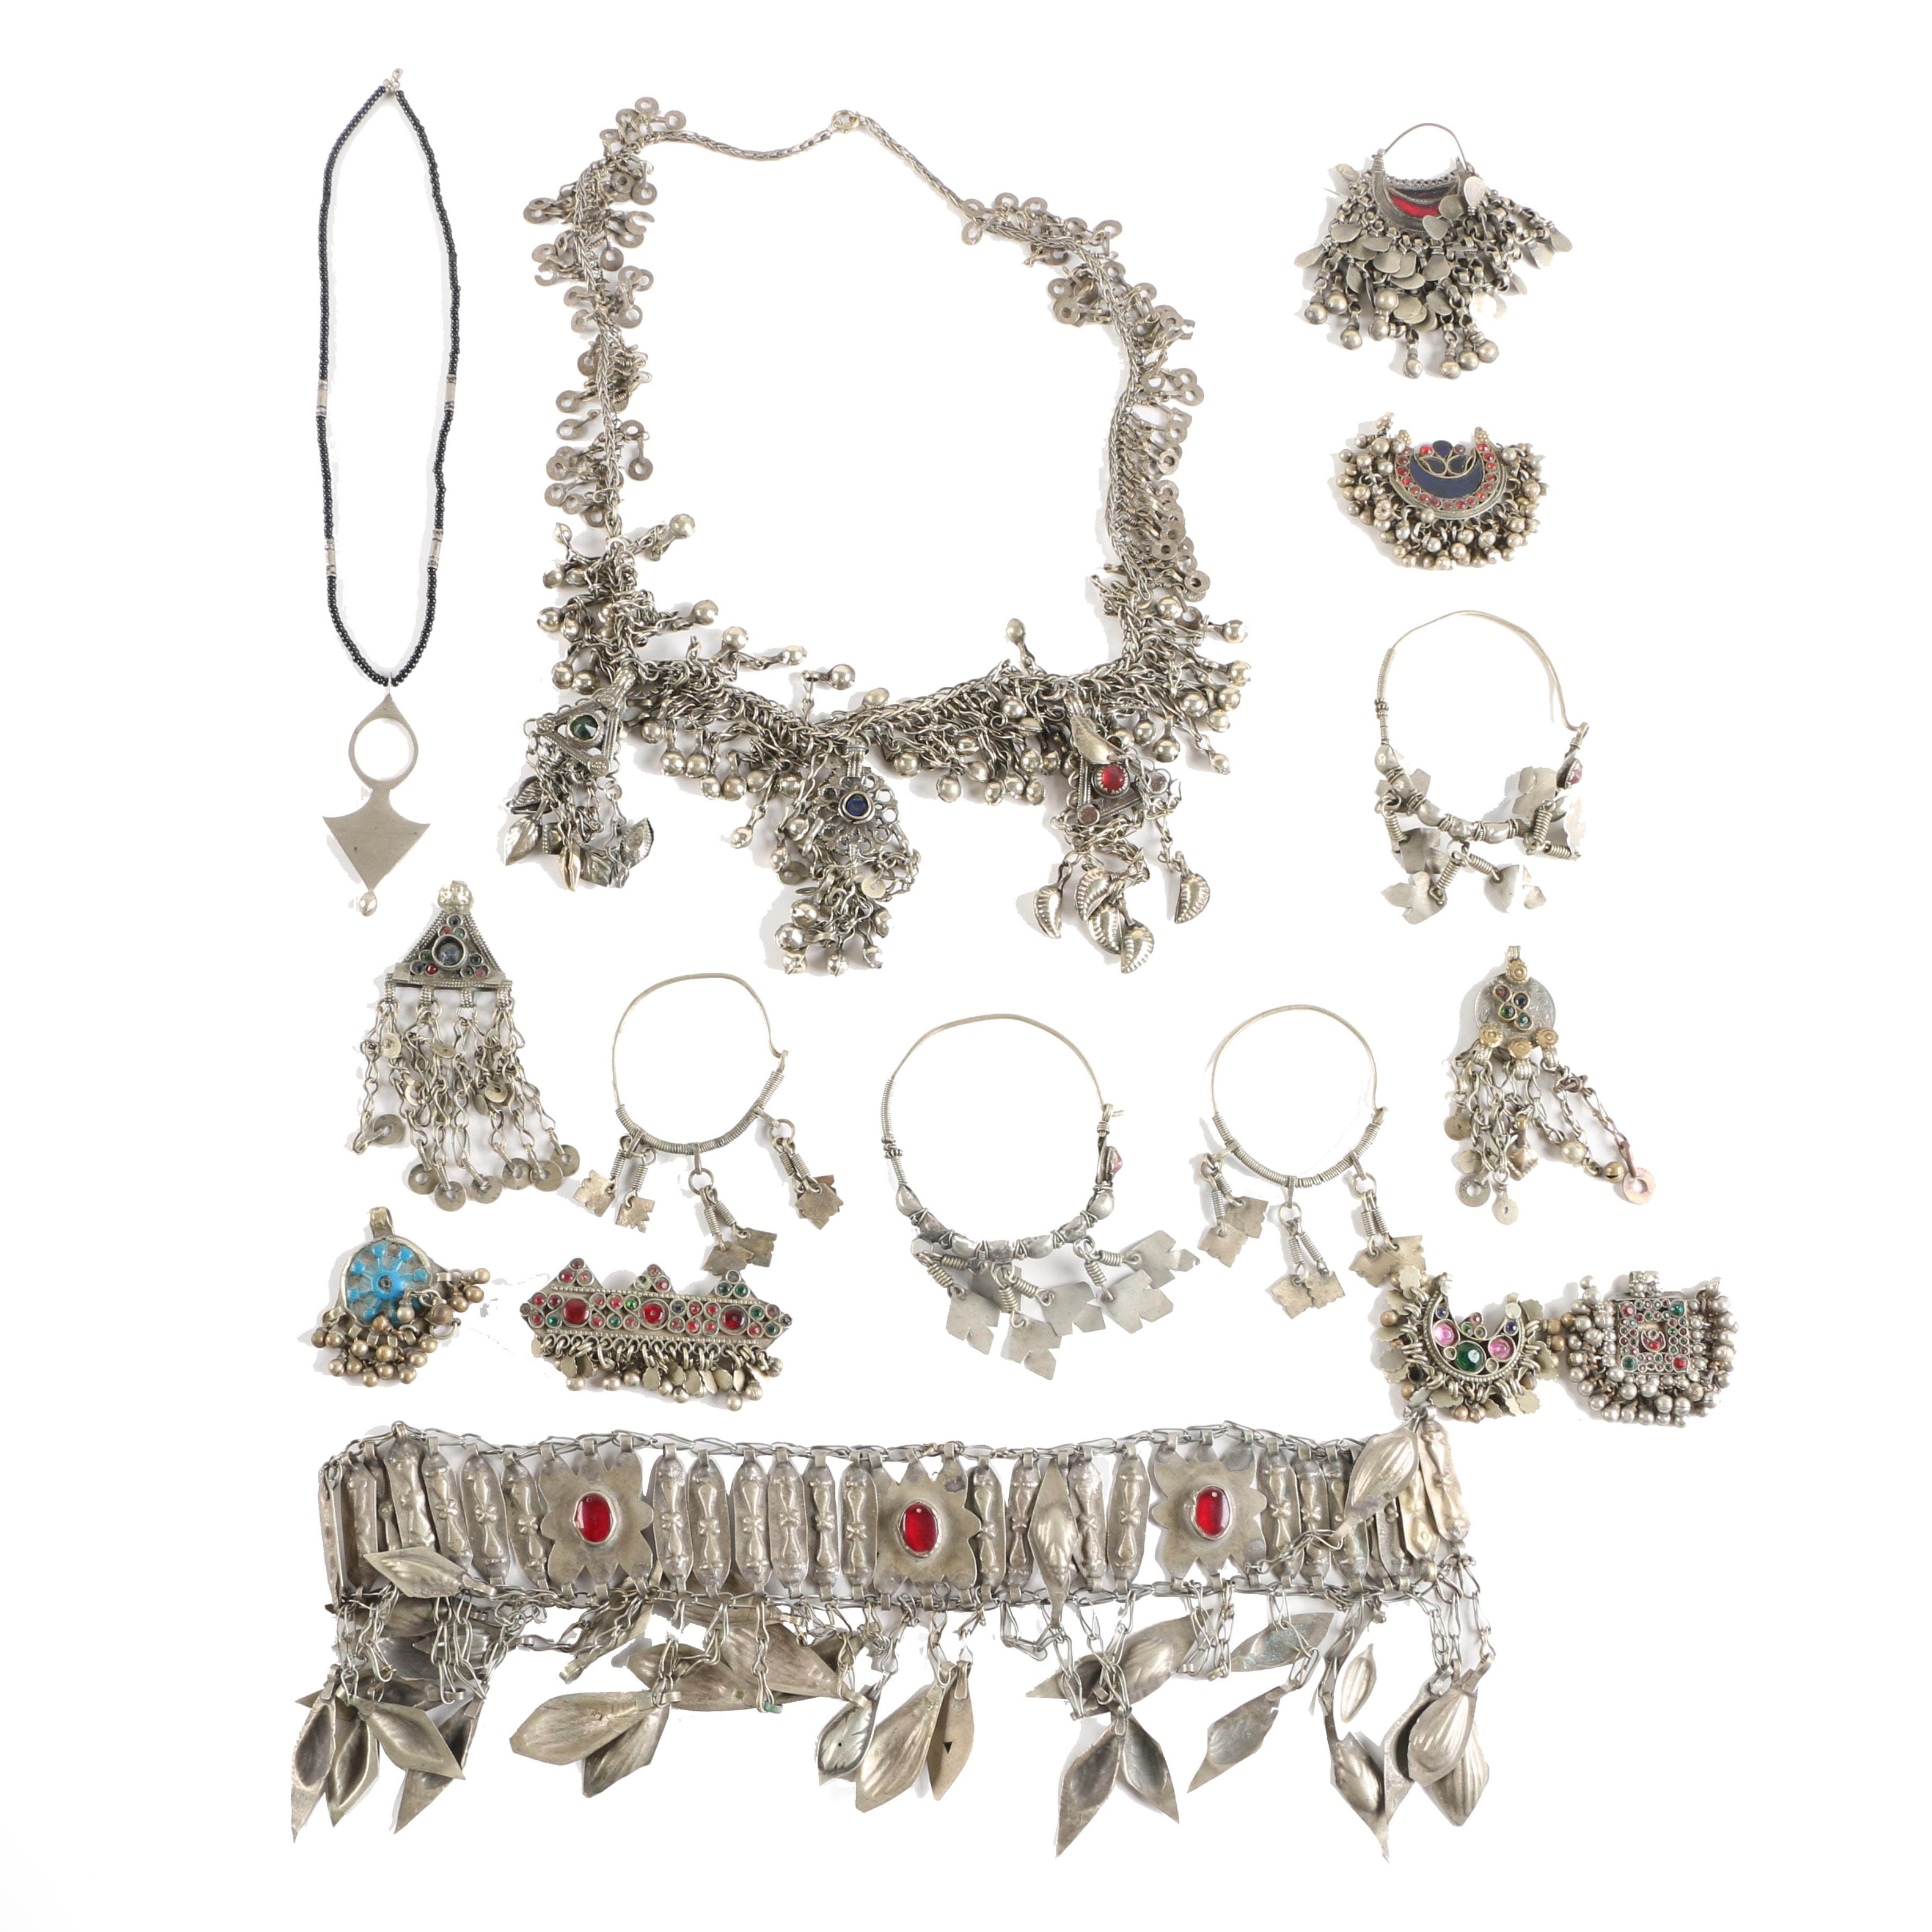 Bedouin Style Jewelry Including Beaded Necklace